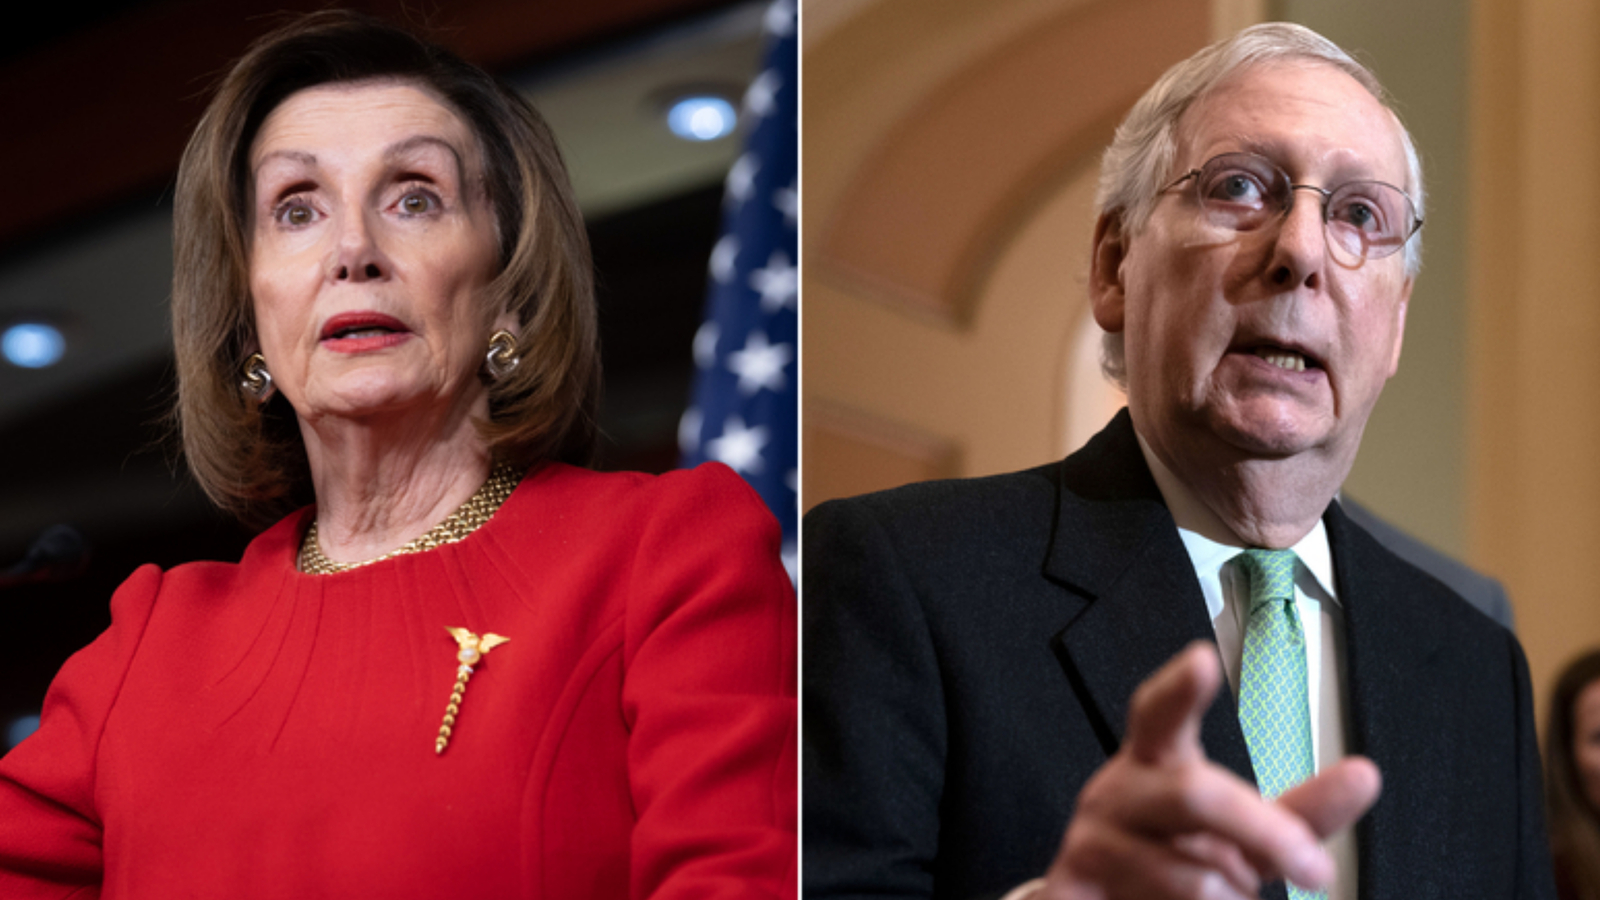 Democrats open to partisan balance on Jan. 6 commission, but panel's scope still a sticking point